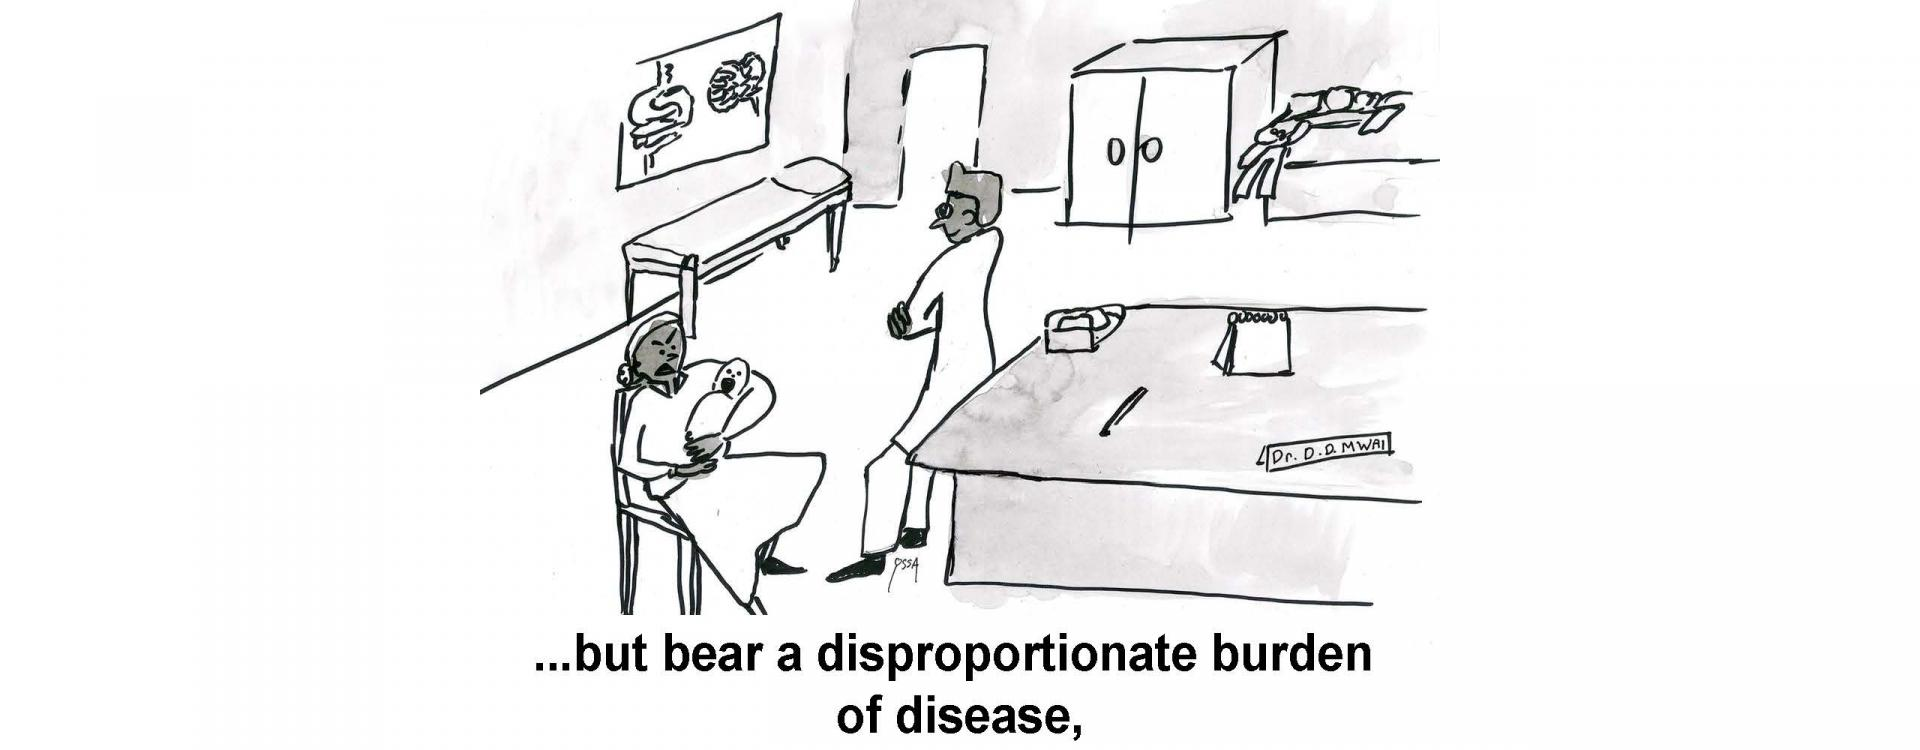 ...but bear a disproportionate burden of disease,